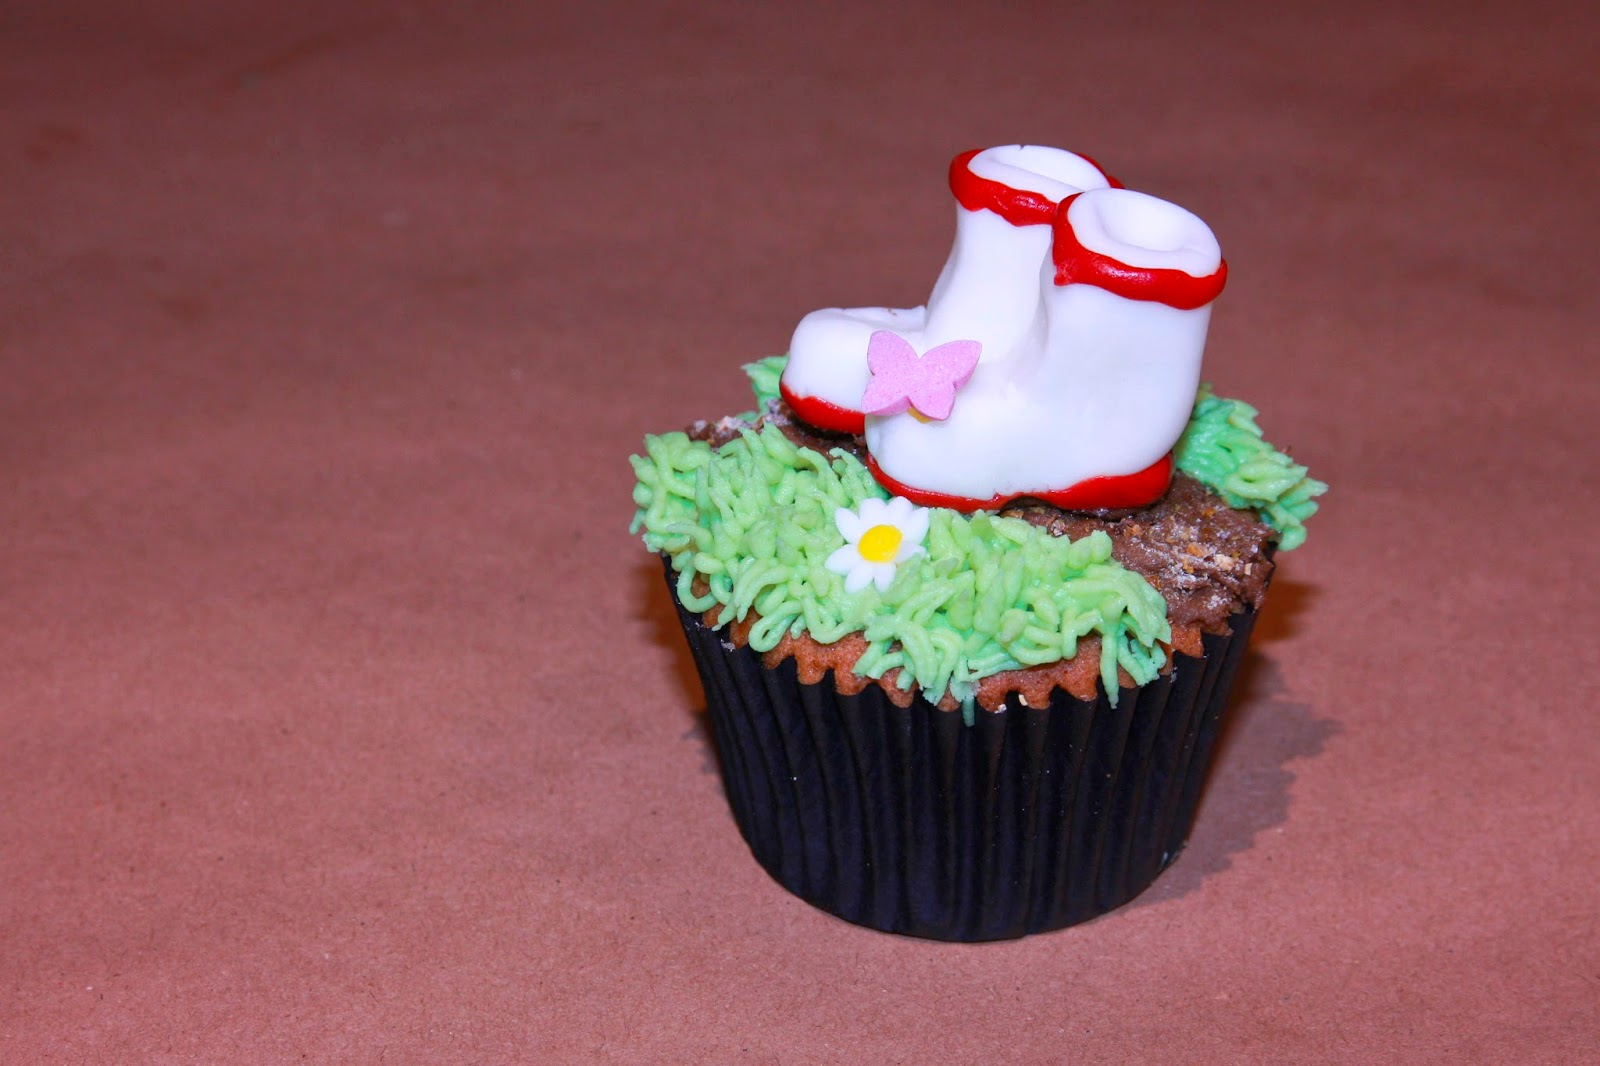 Earl Grey cupcake decorated with a garden path and wellies